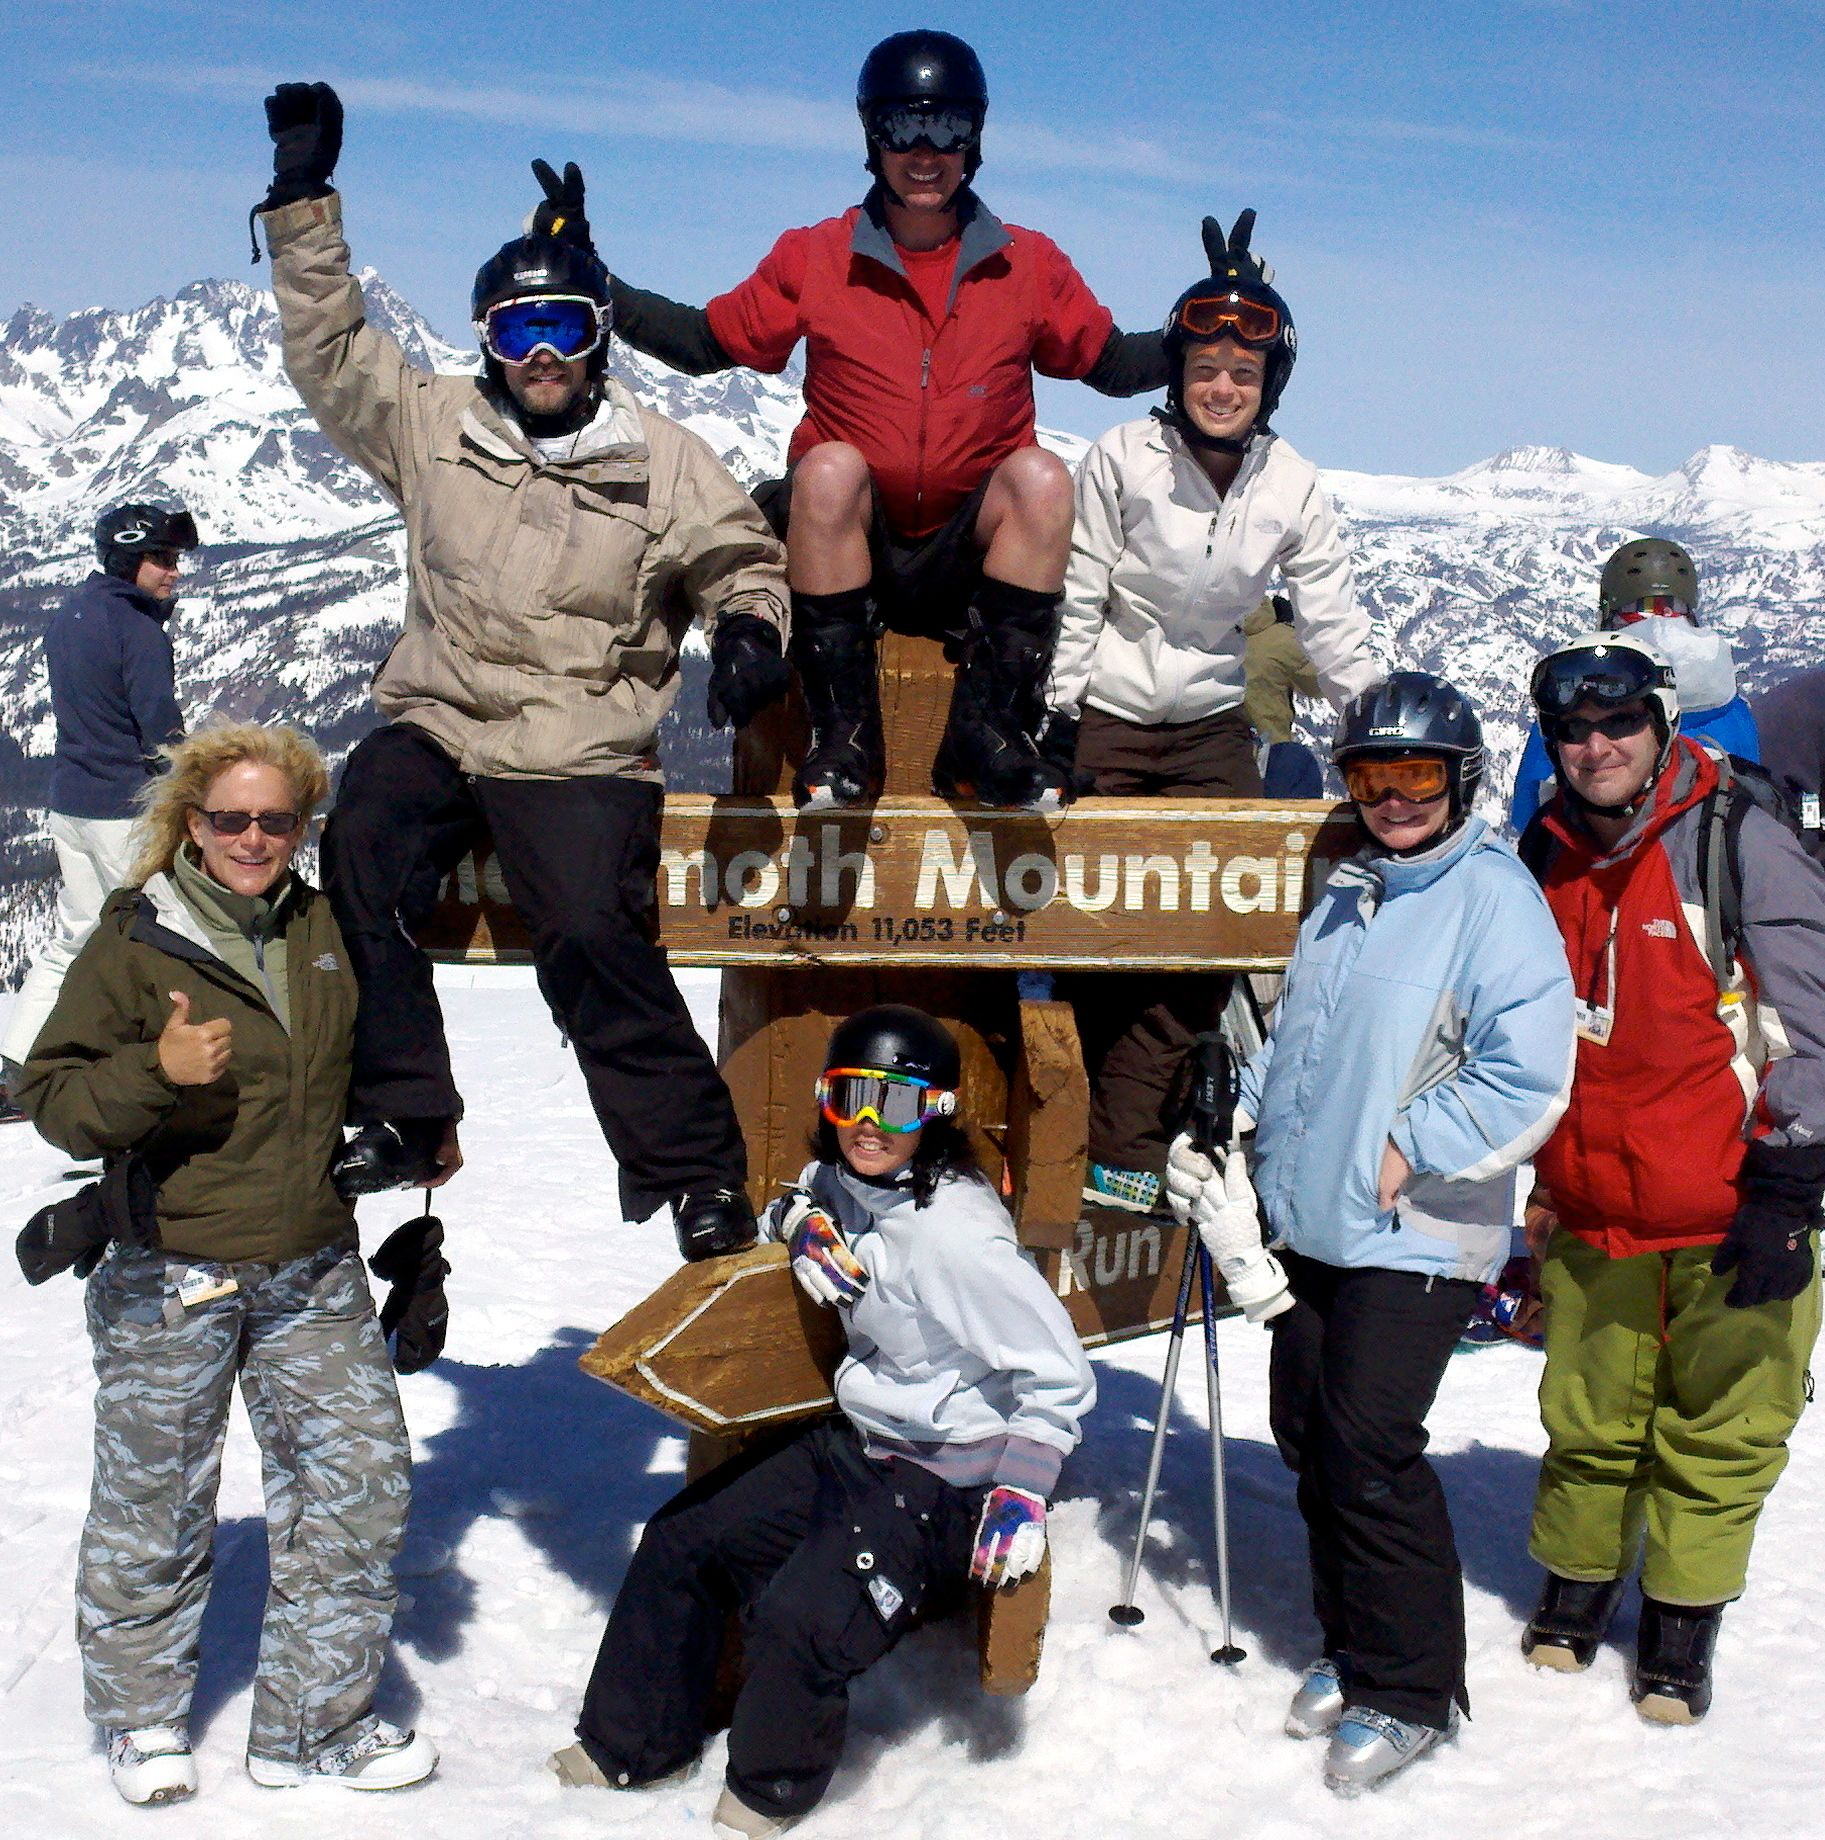 """Über Mammoth"" Skiing & Snowboarding Group"